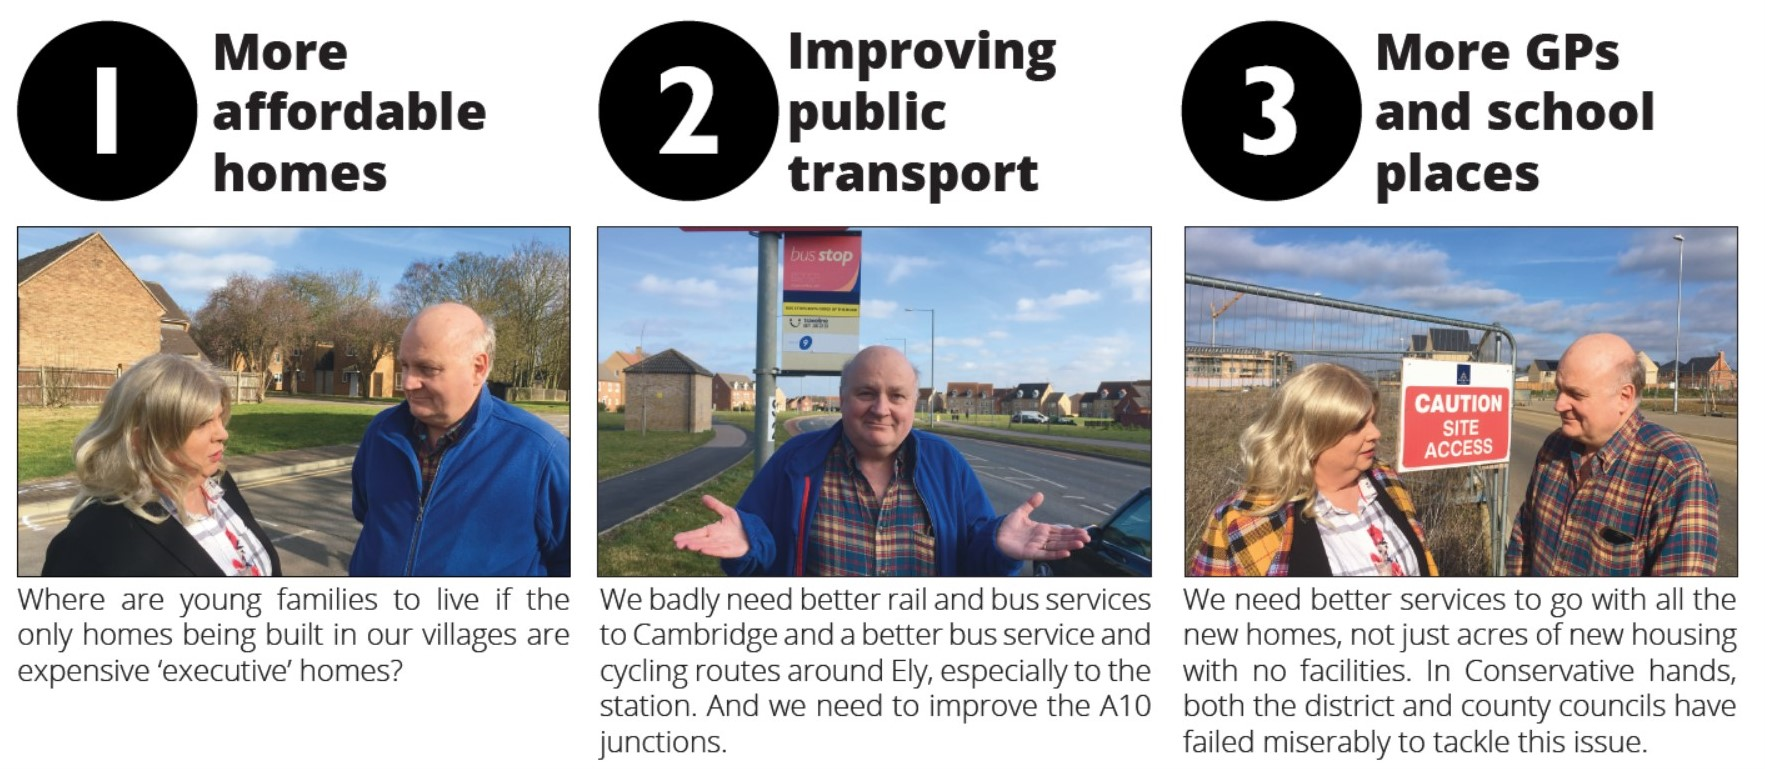 More Affordable Homes, Improving Public Transport and More GPs and School Places